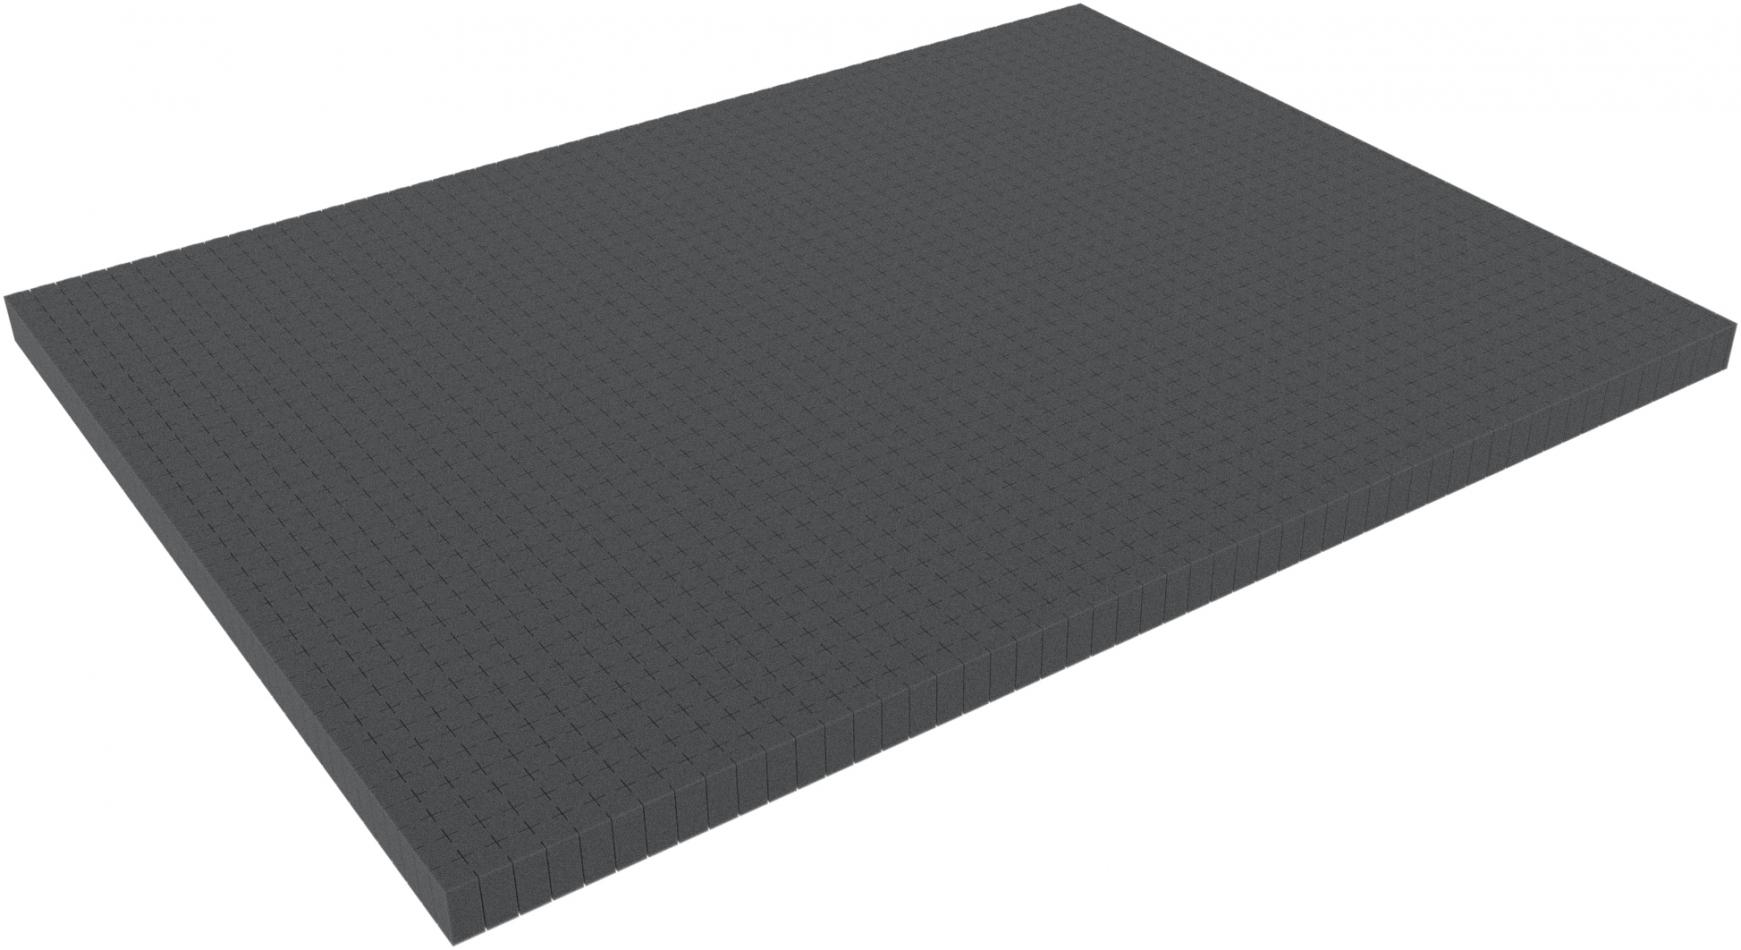 800 mm x 600 mm x 30 mm - Raster 15 mm - Pick and Pluck / Pre-Cubed foam tray